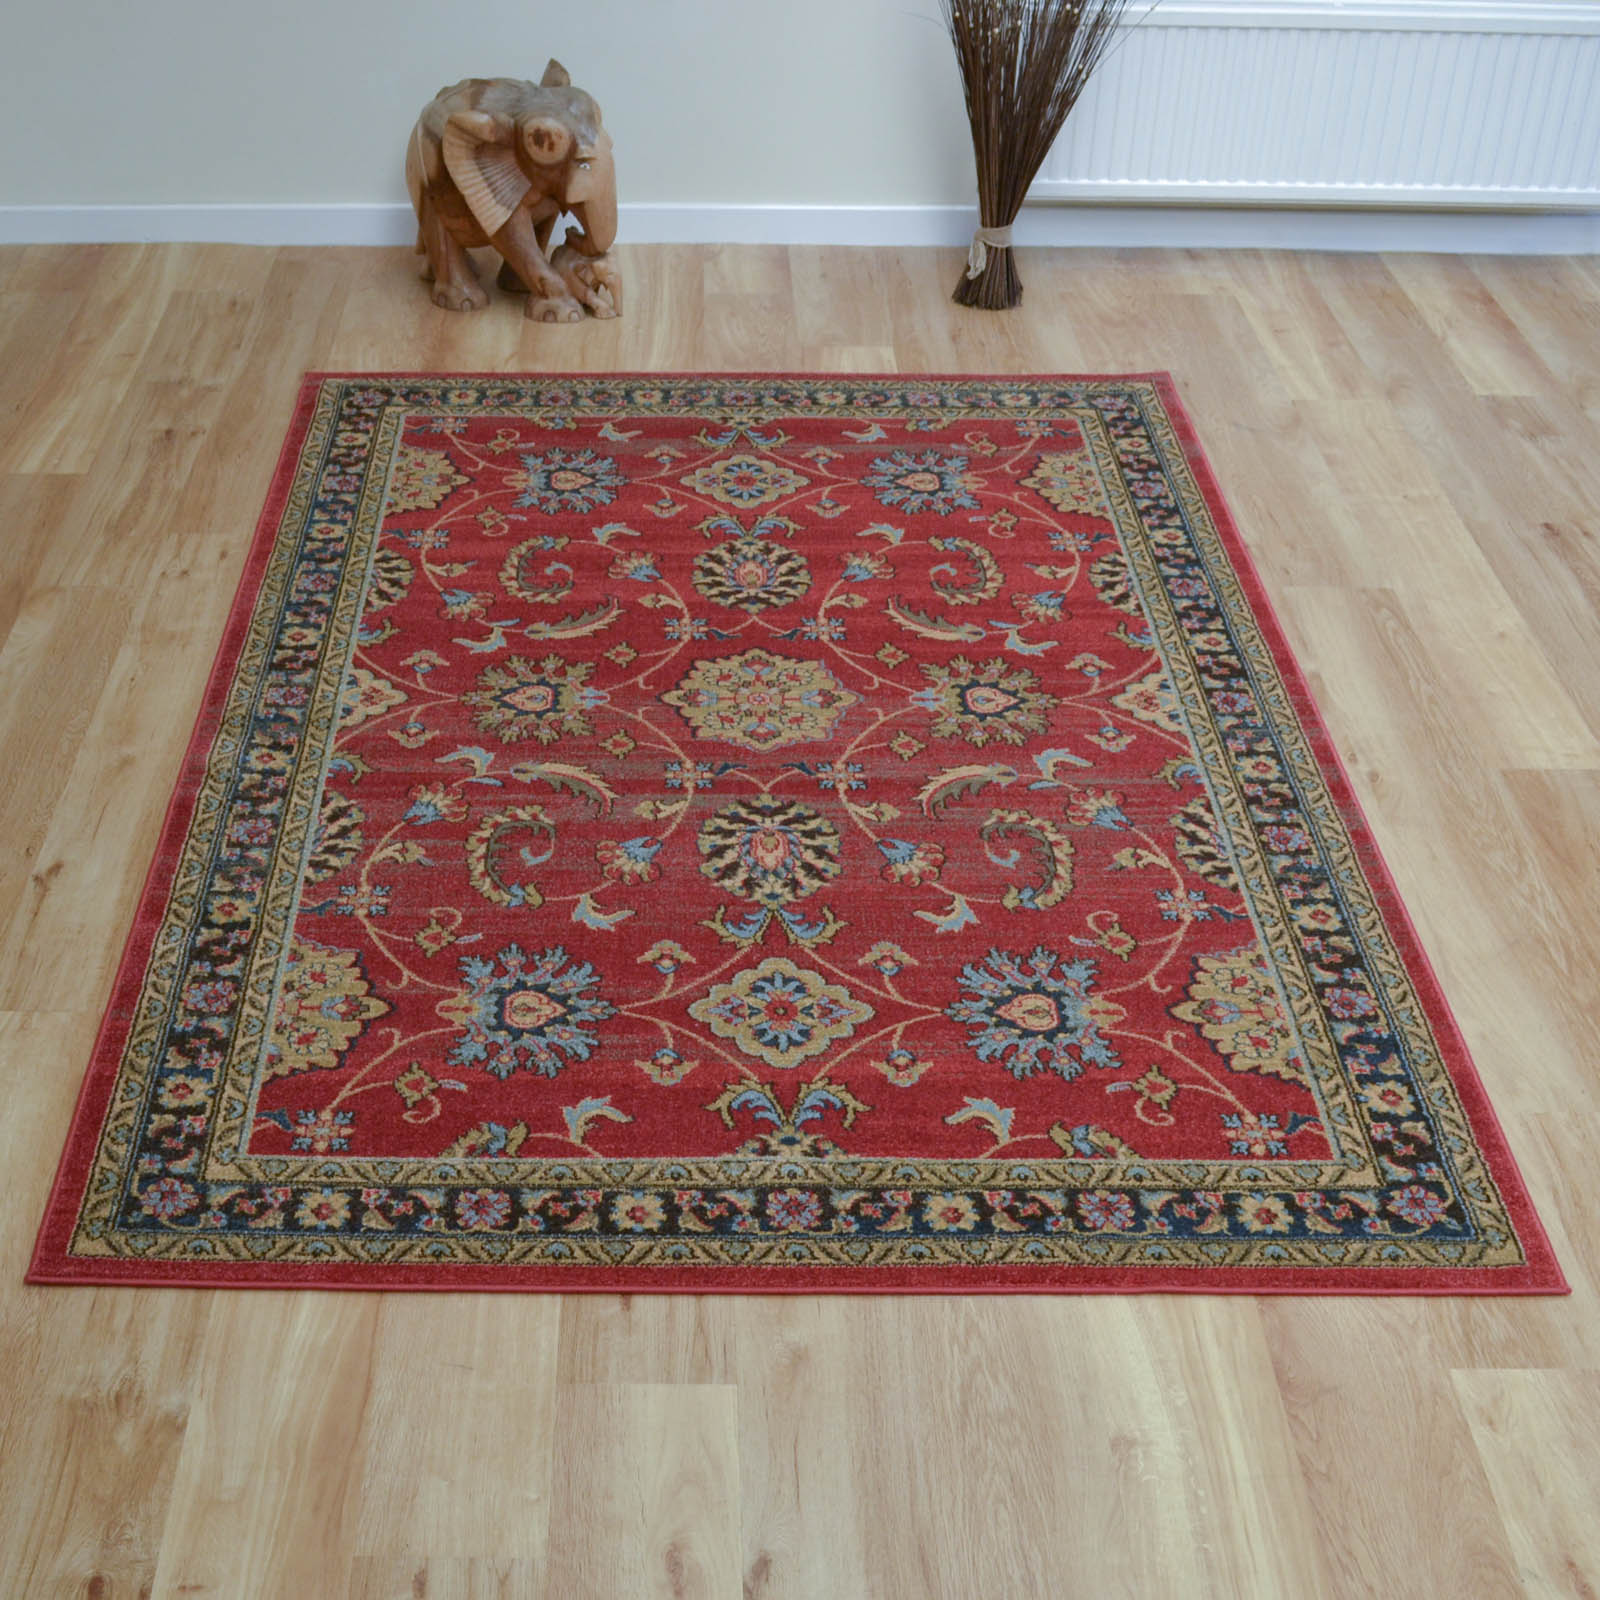 Ziegler Rugs 347 in Red and Black